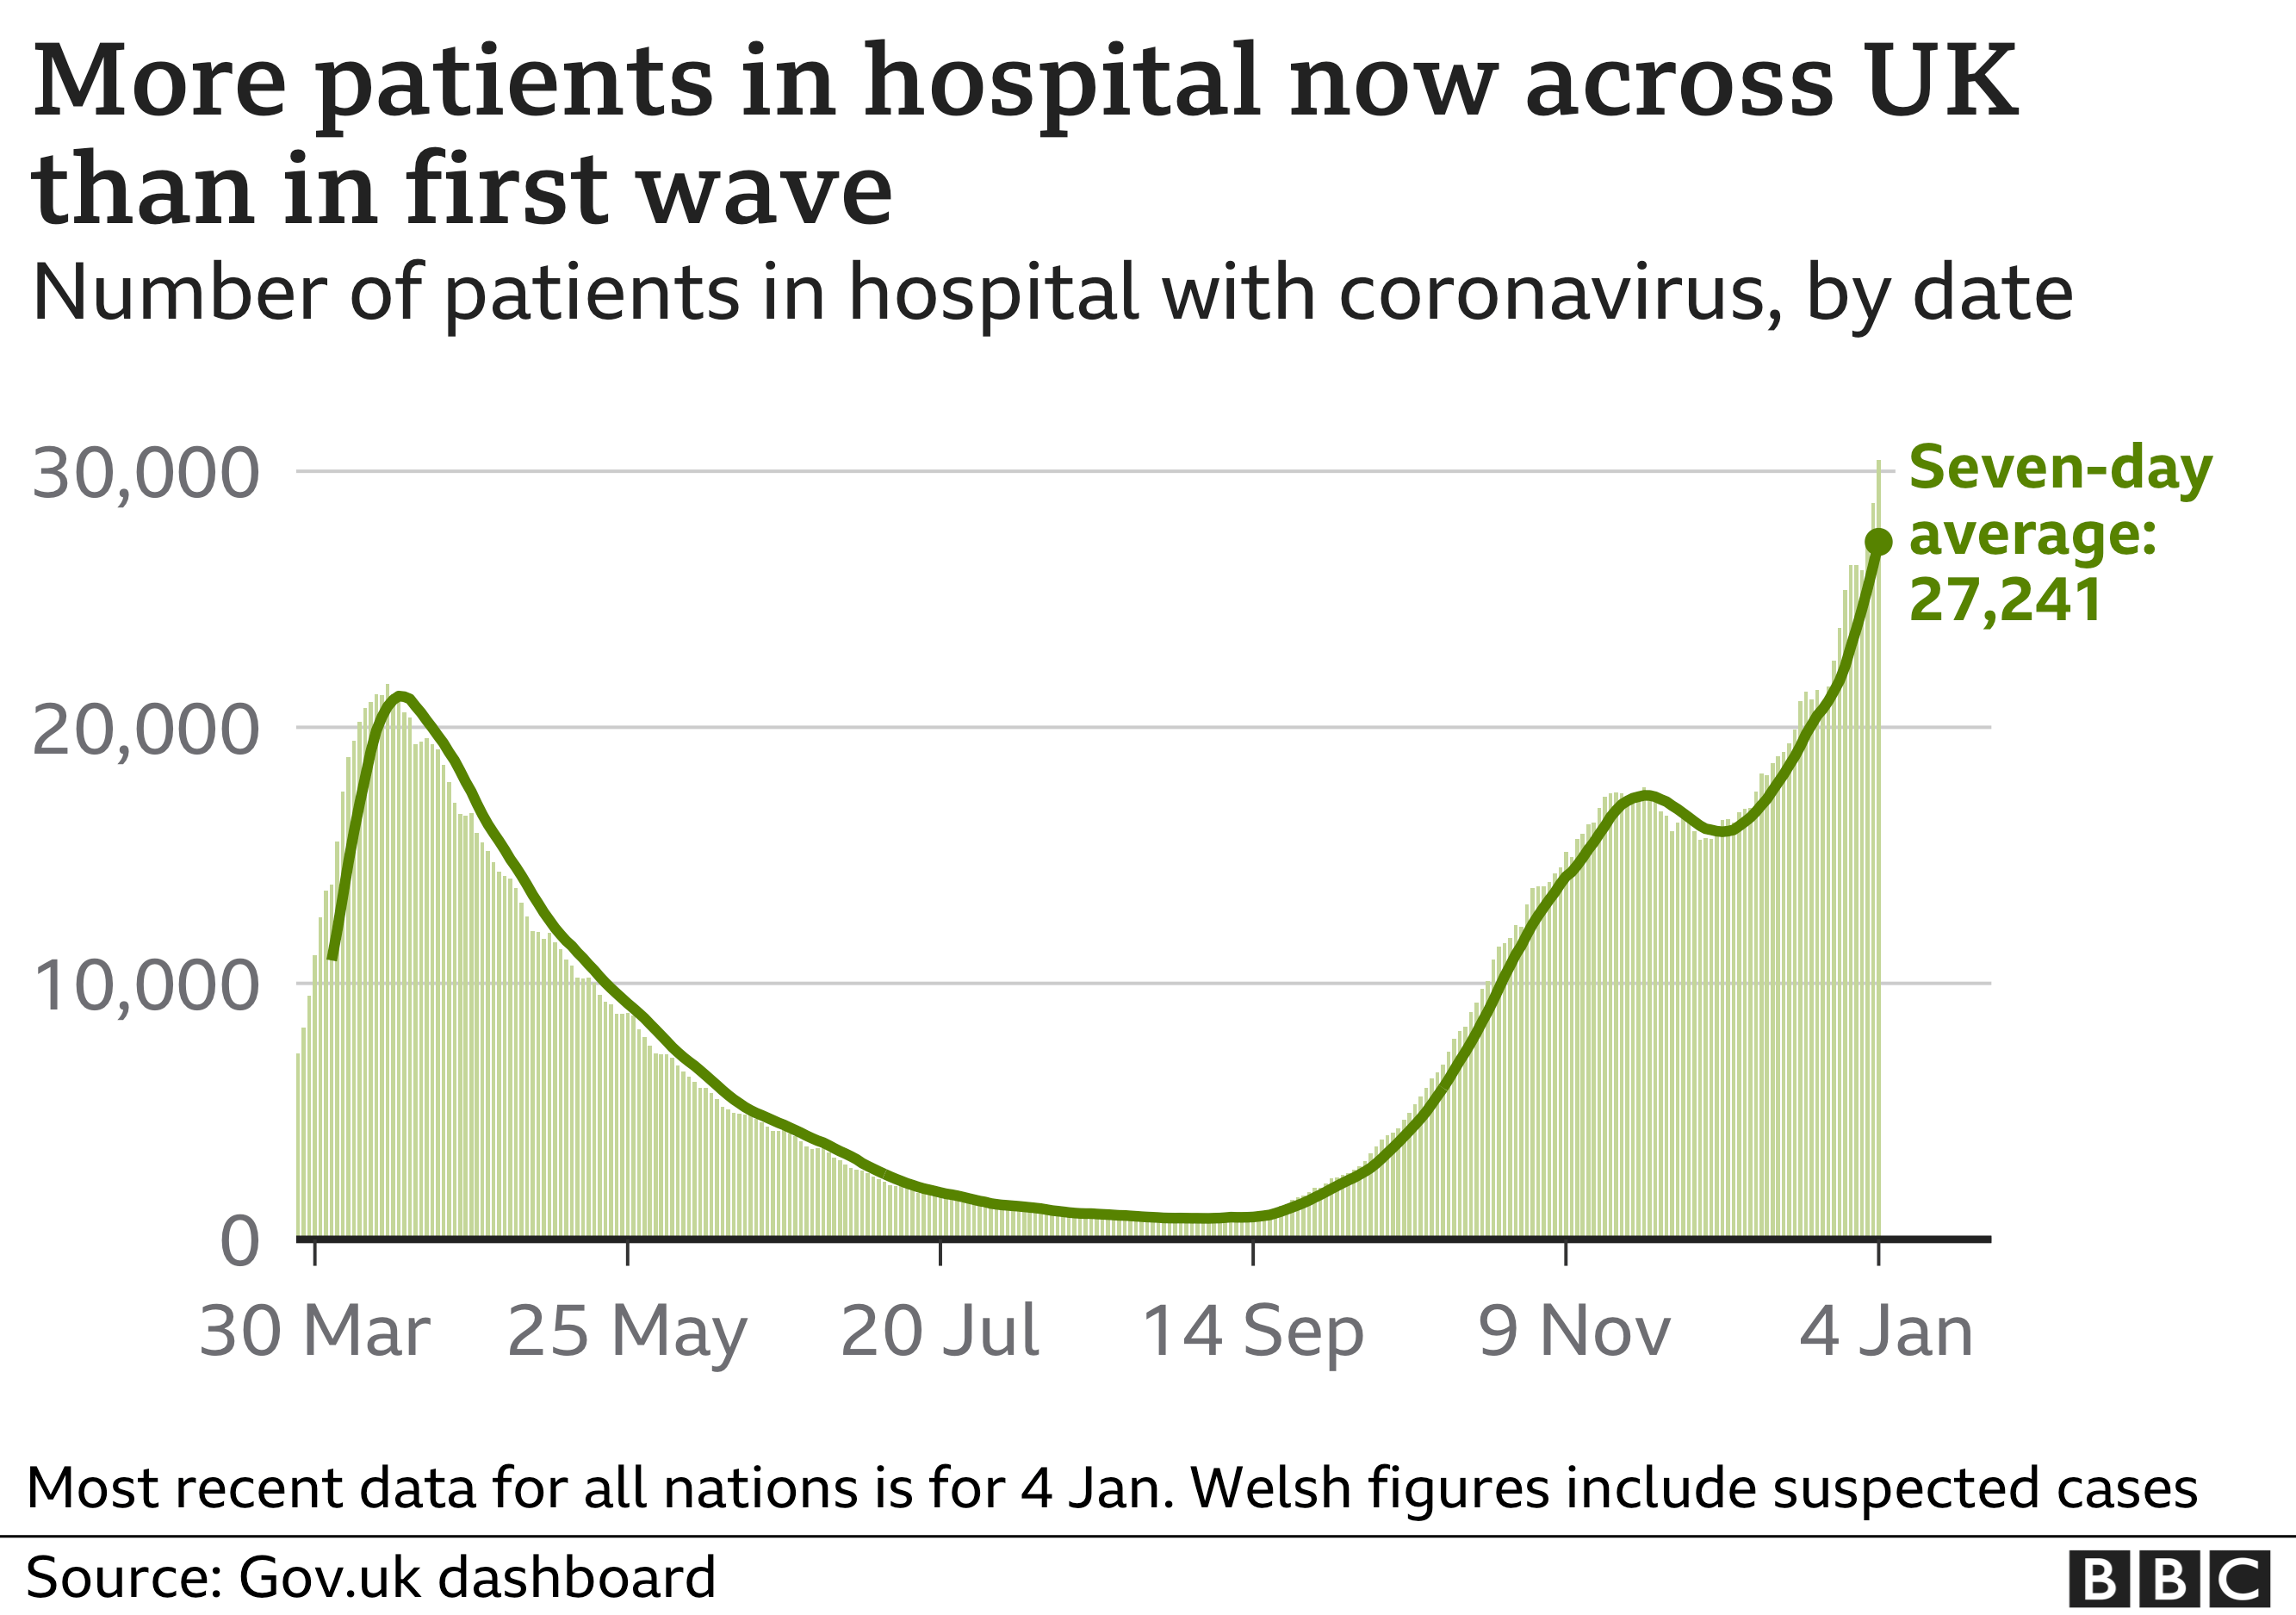 Chart shows number in hospital now higher than in first wave